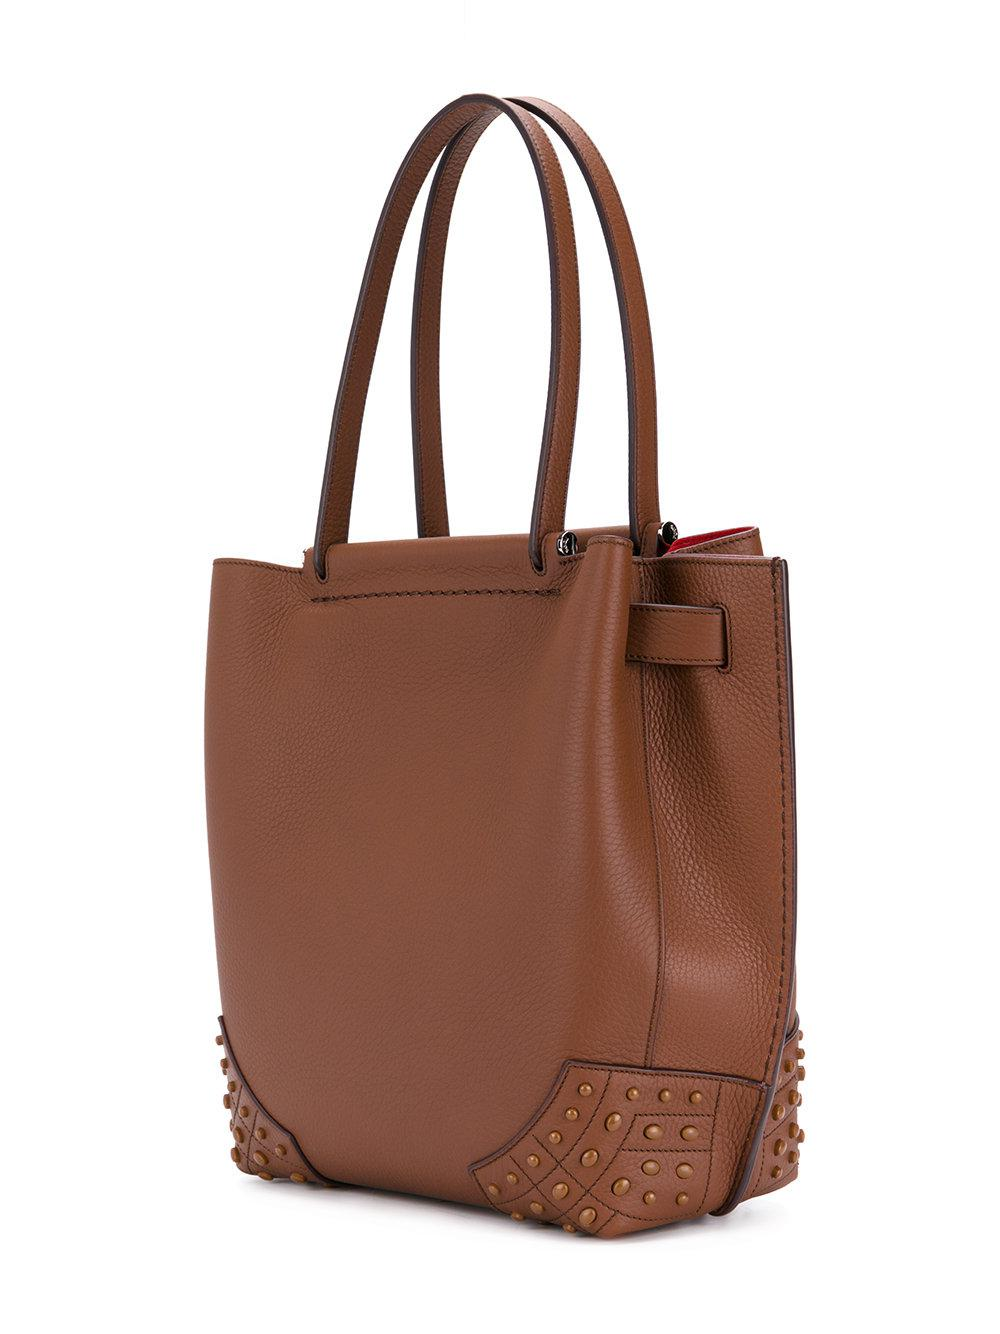 Tod's Leather Gather Tote Bag in Brown